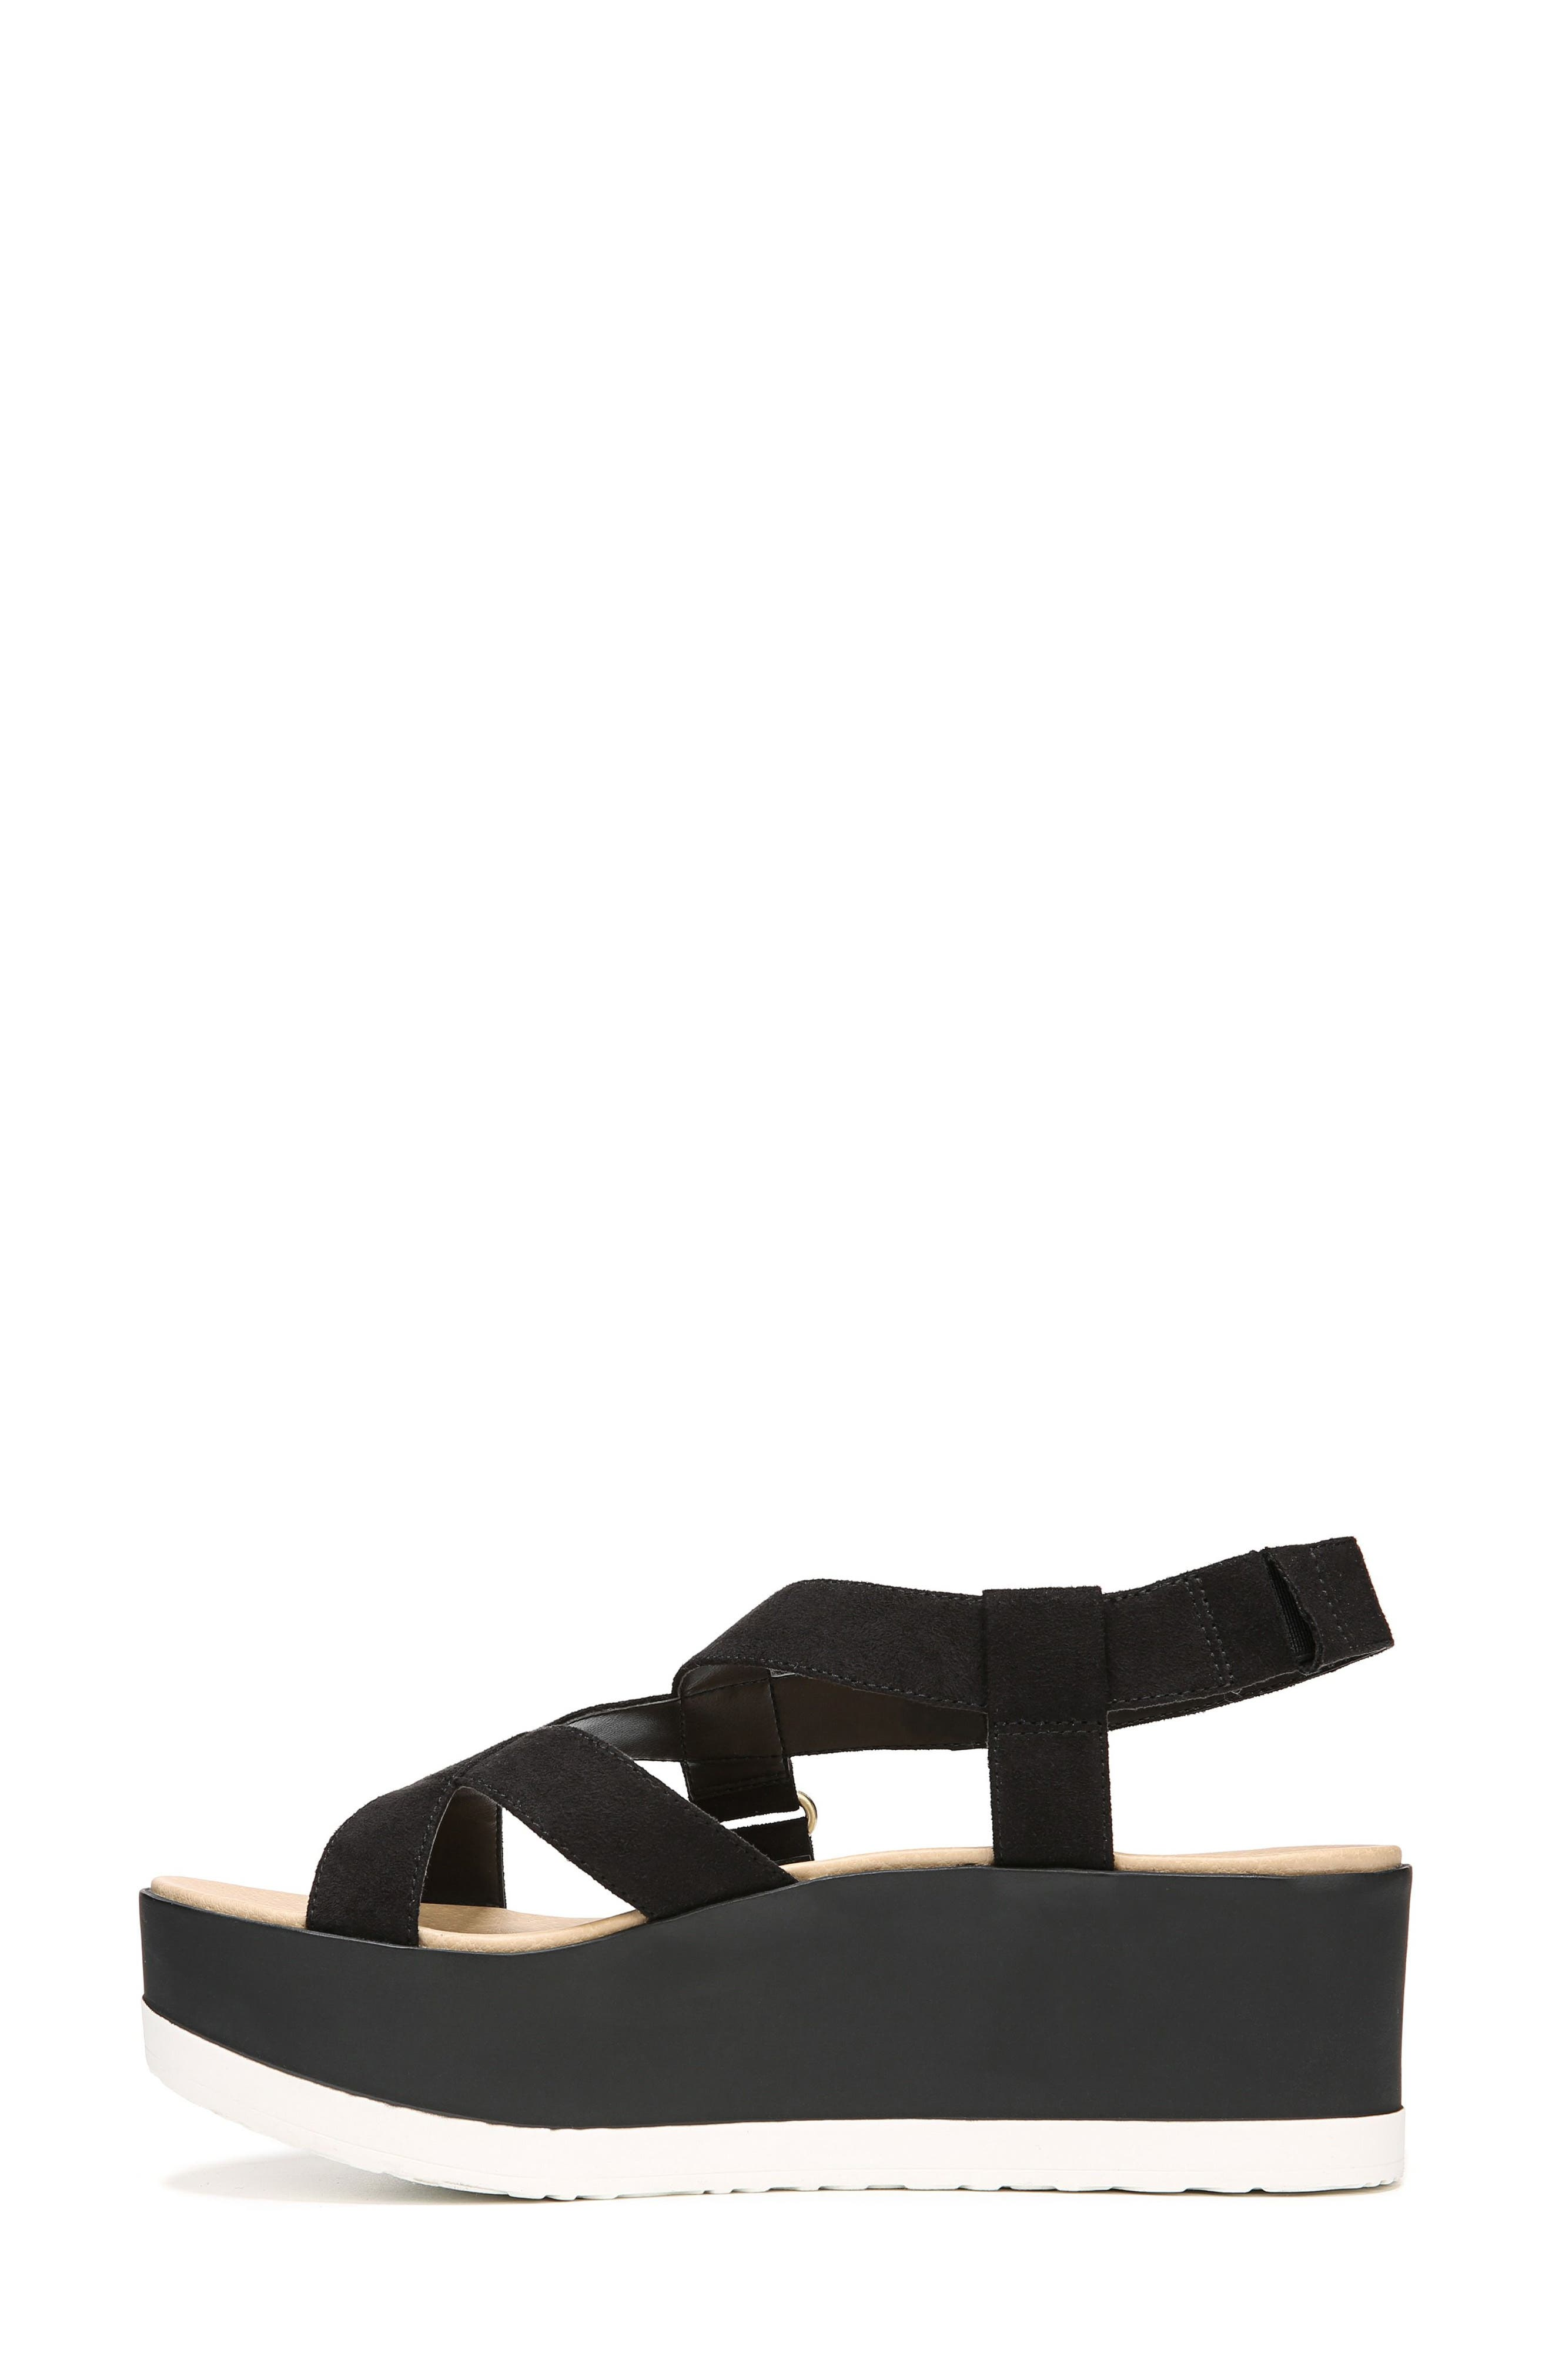 Companion Platform Sandal,                             Alternate thumbnail 3, color,                             BLACK FABRIC